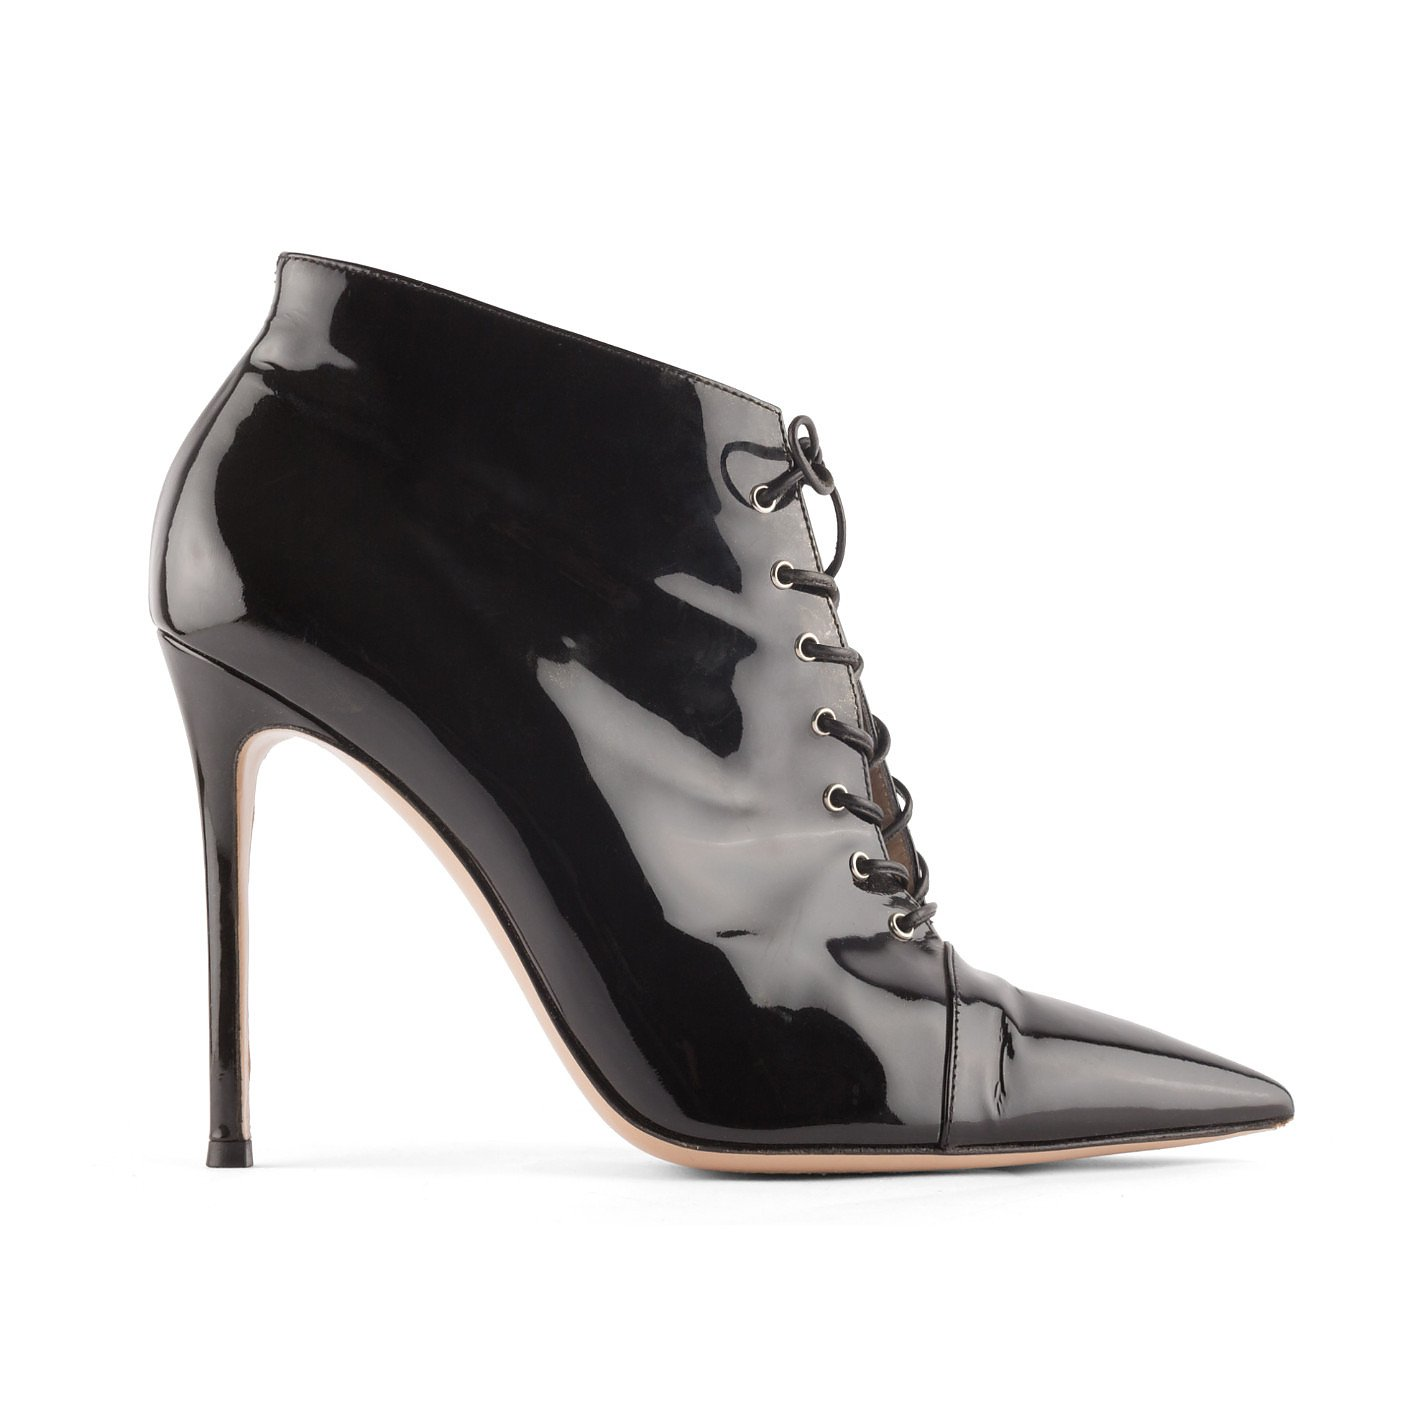 GIANVITO ROSSI Lace-Up Patent Ankle Boots